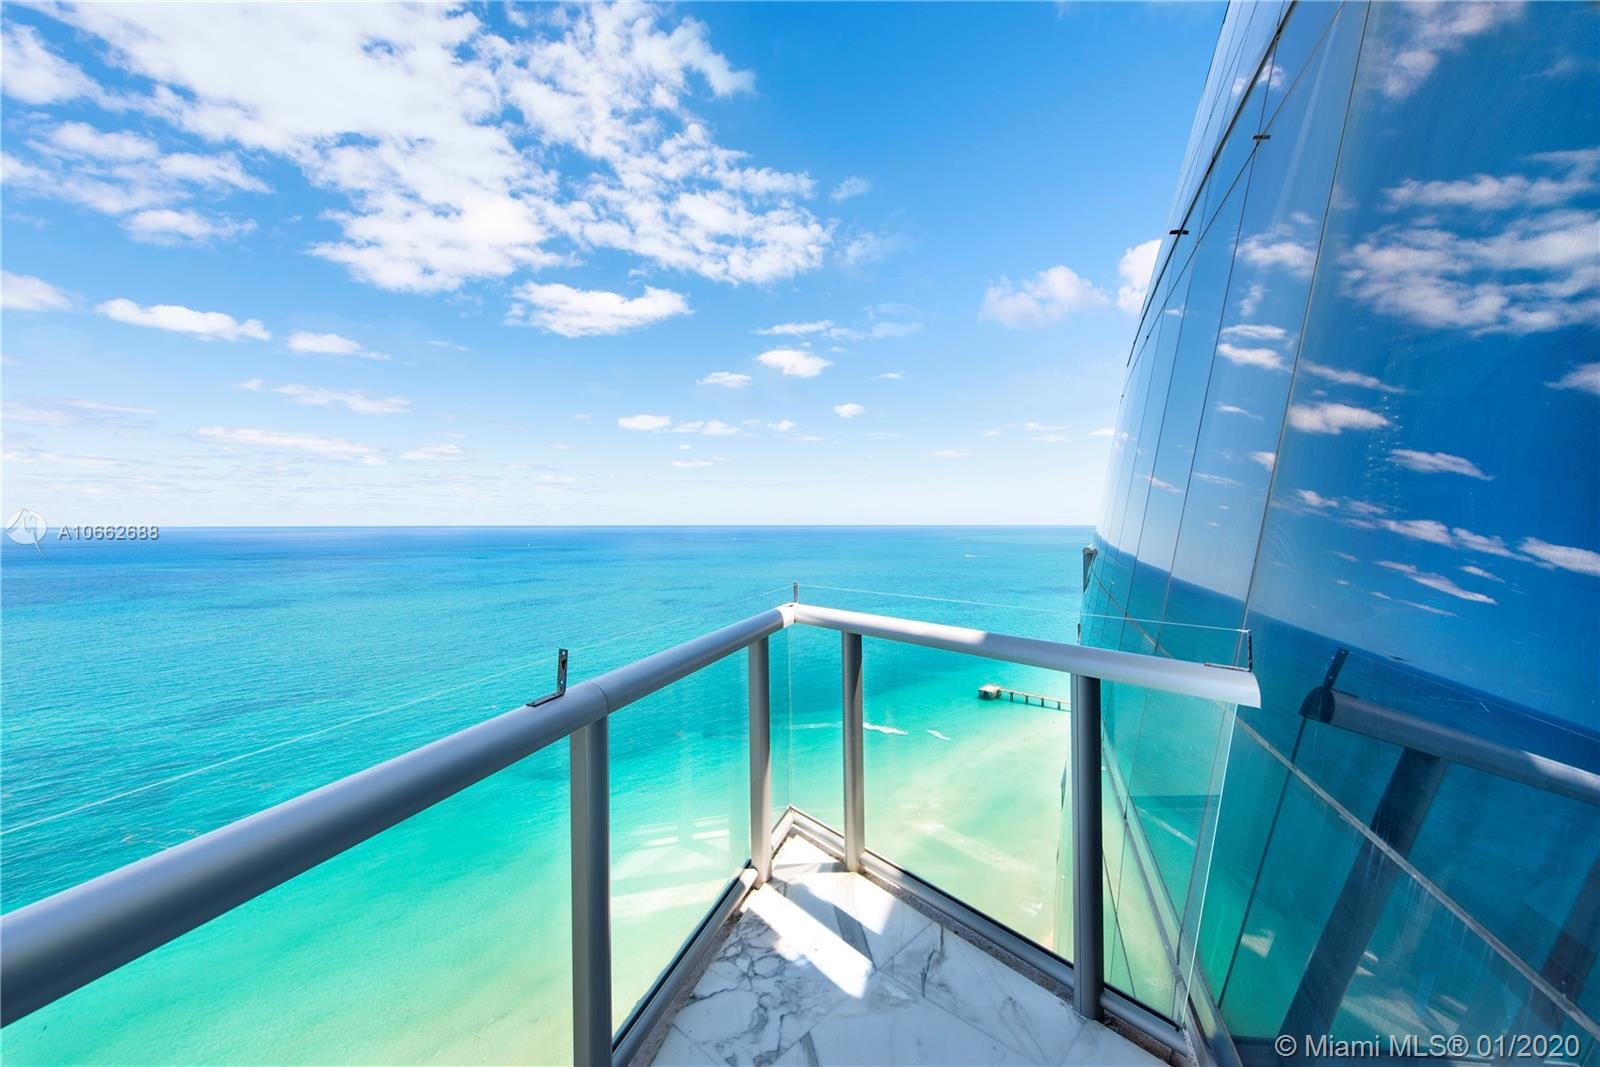 17121 Collins Ave, Sunny Isles Beach, Florida